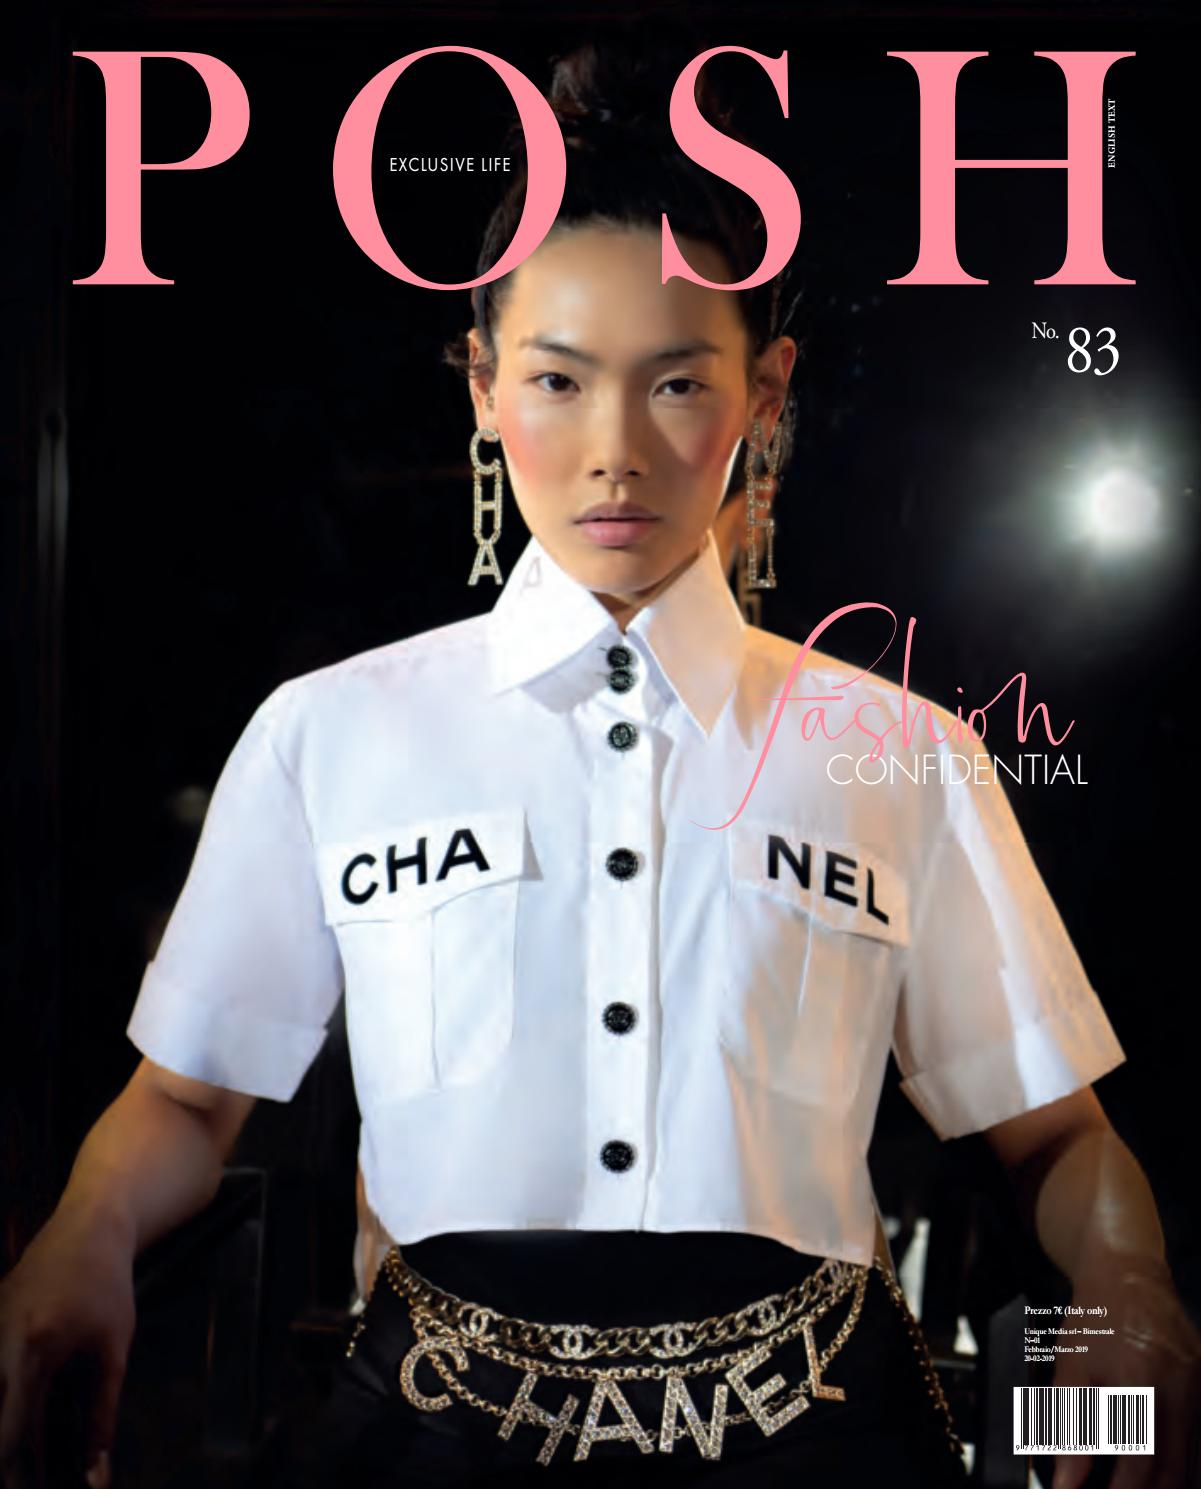 eb19ee0558be POSH 83 N°1 2019 (FEBBRAIO-MARZO) by Unique Media - issuu